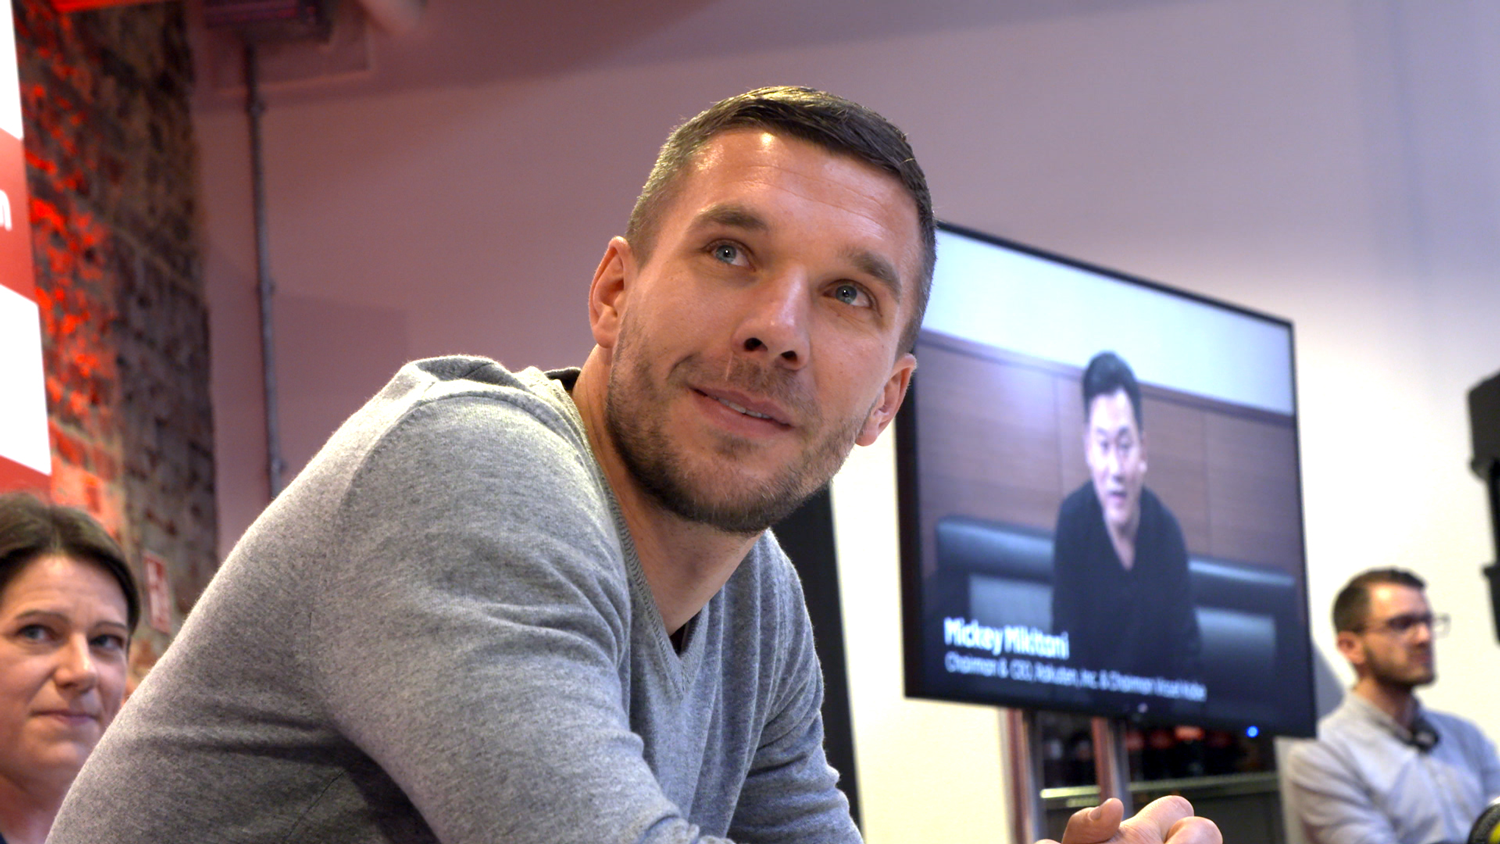 Rakuten CEO Mickey Mikitani congratulates Lukas Podolski via video on his appointment as Global Brand Ambassador for Rakuten at the Schauinsland-Reisen Cup 2019.